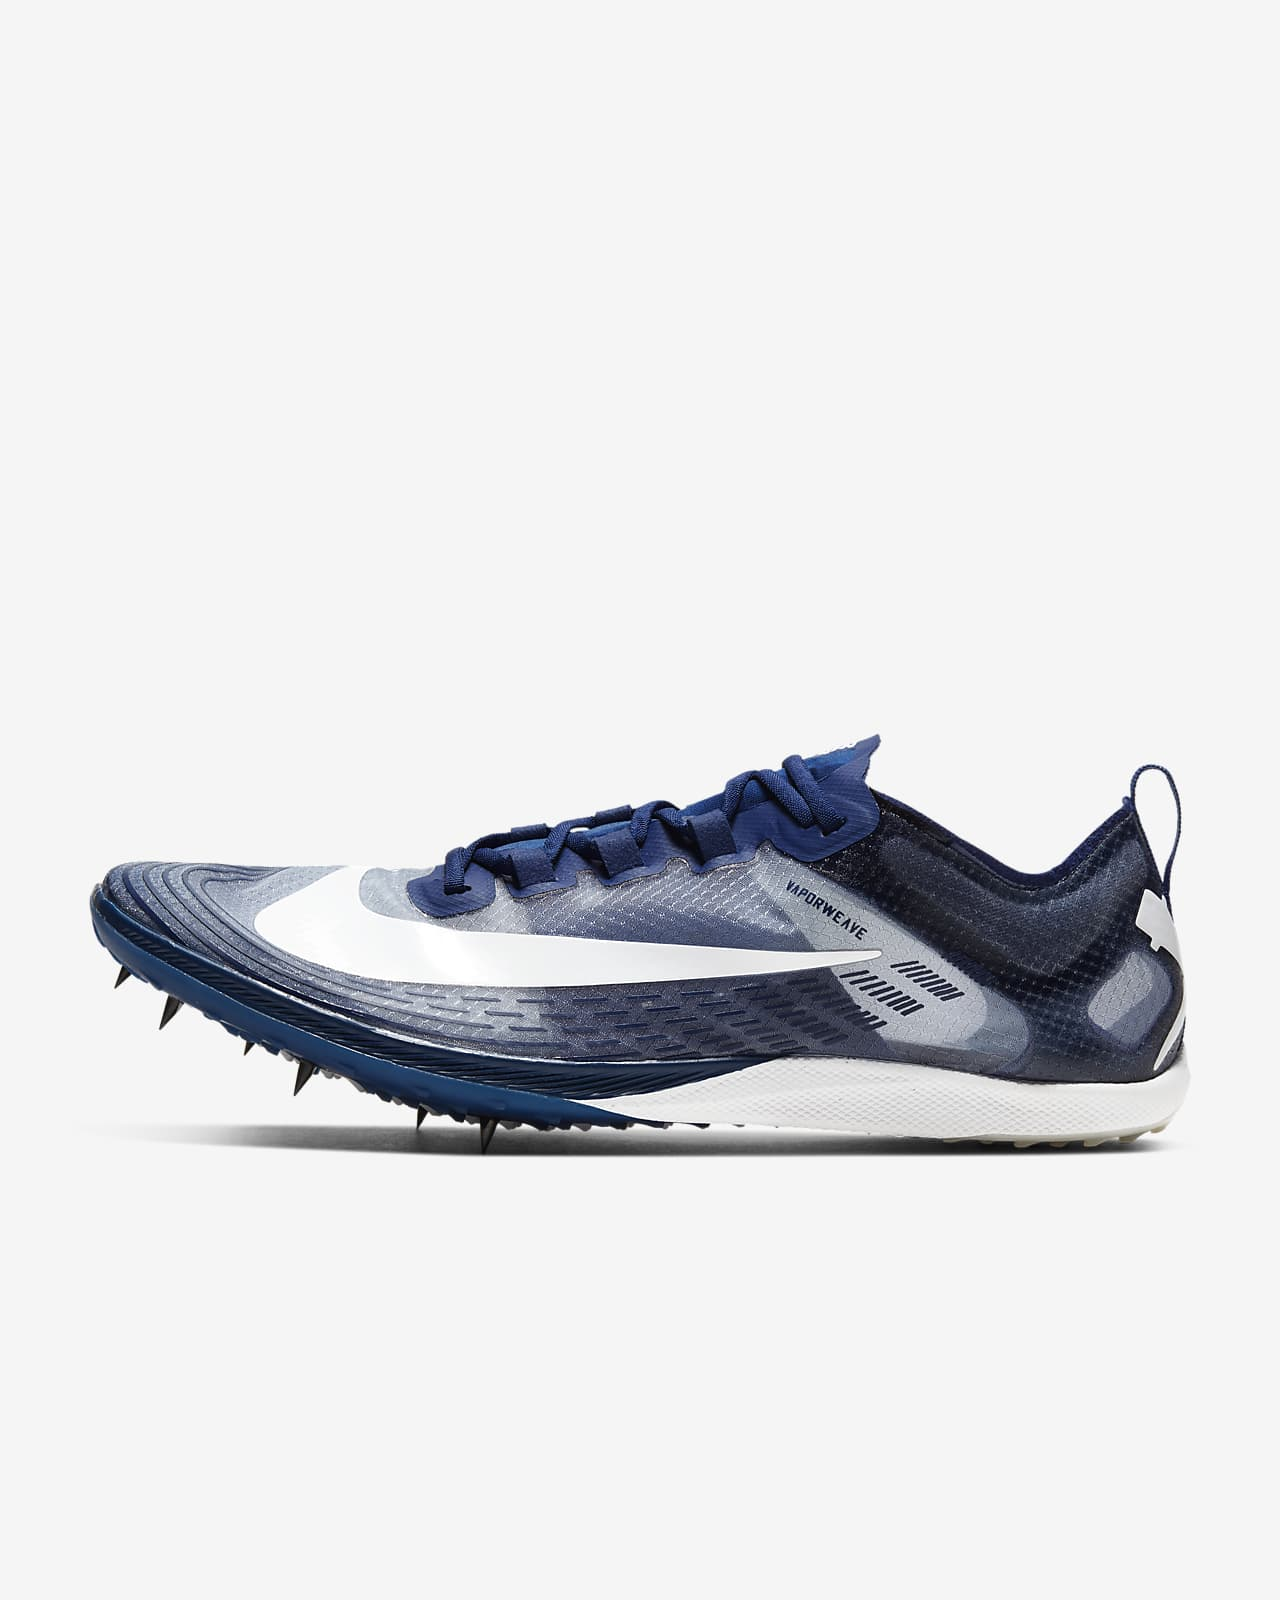 Nike Zoom Victory 5 XC Racing Spike